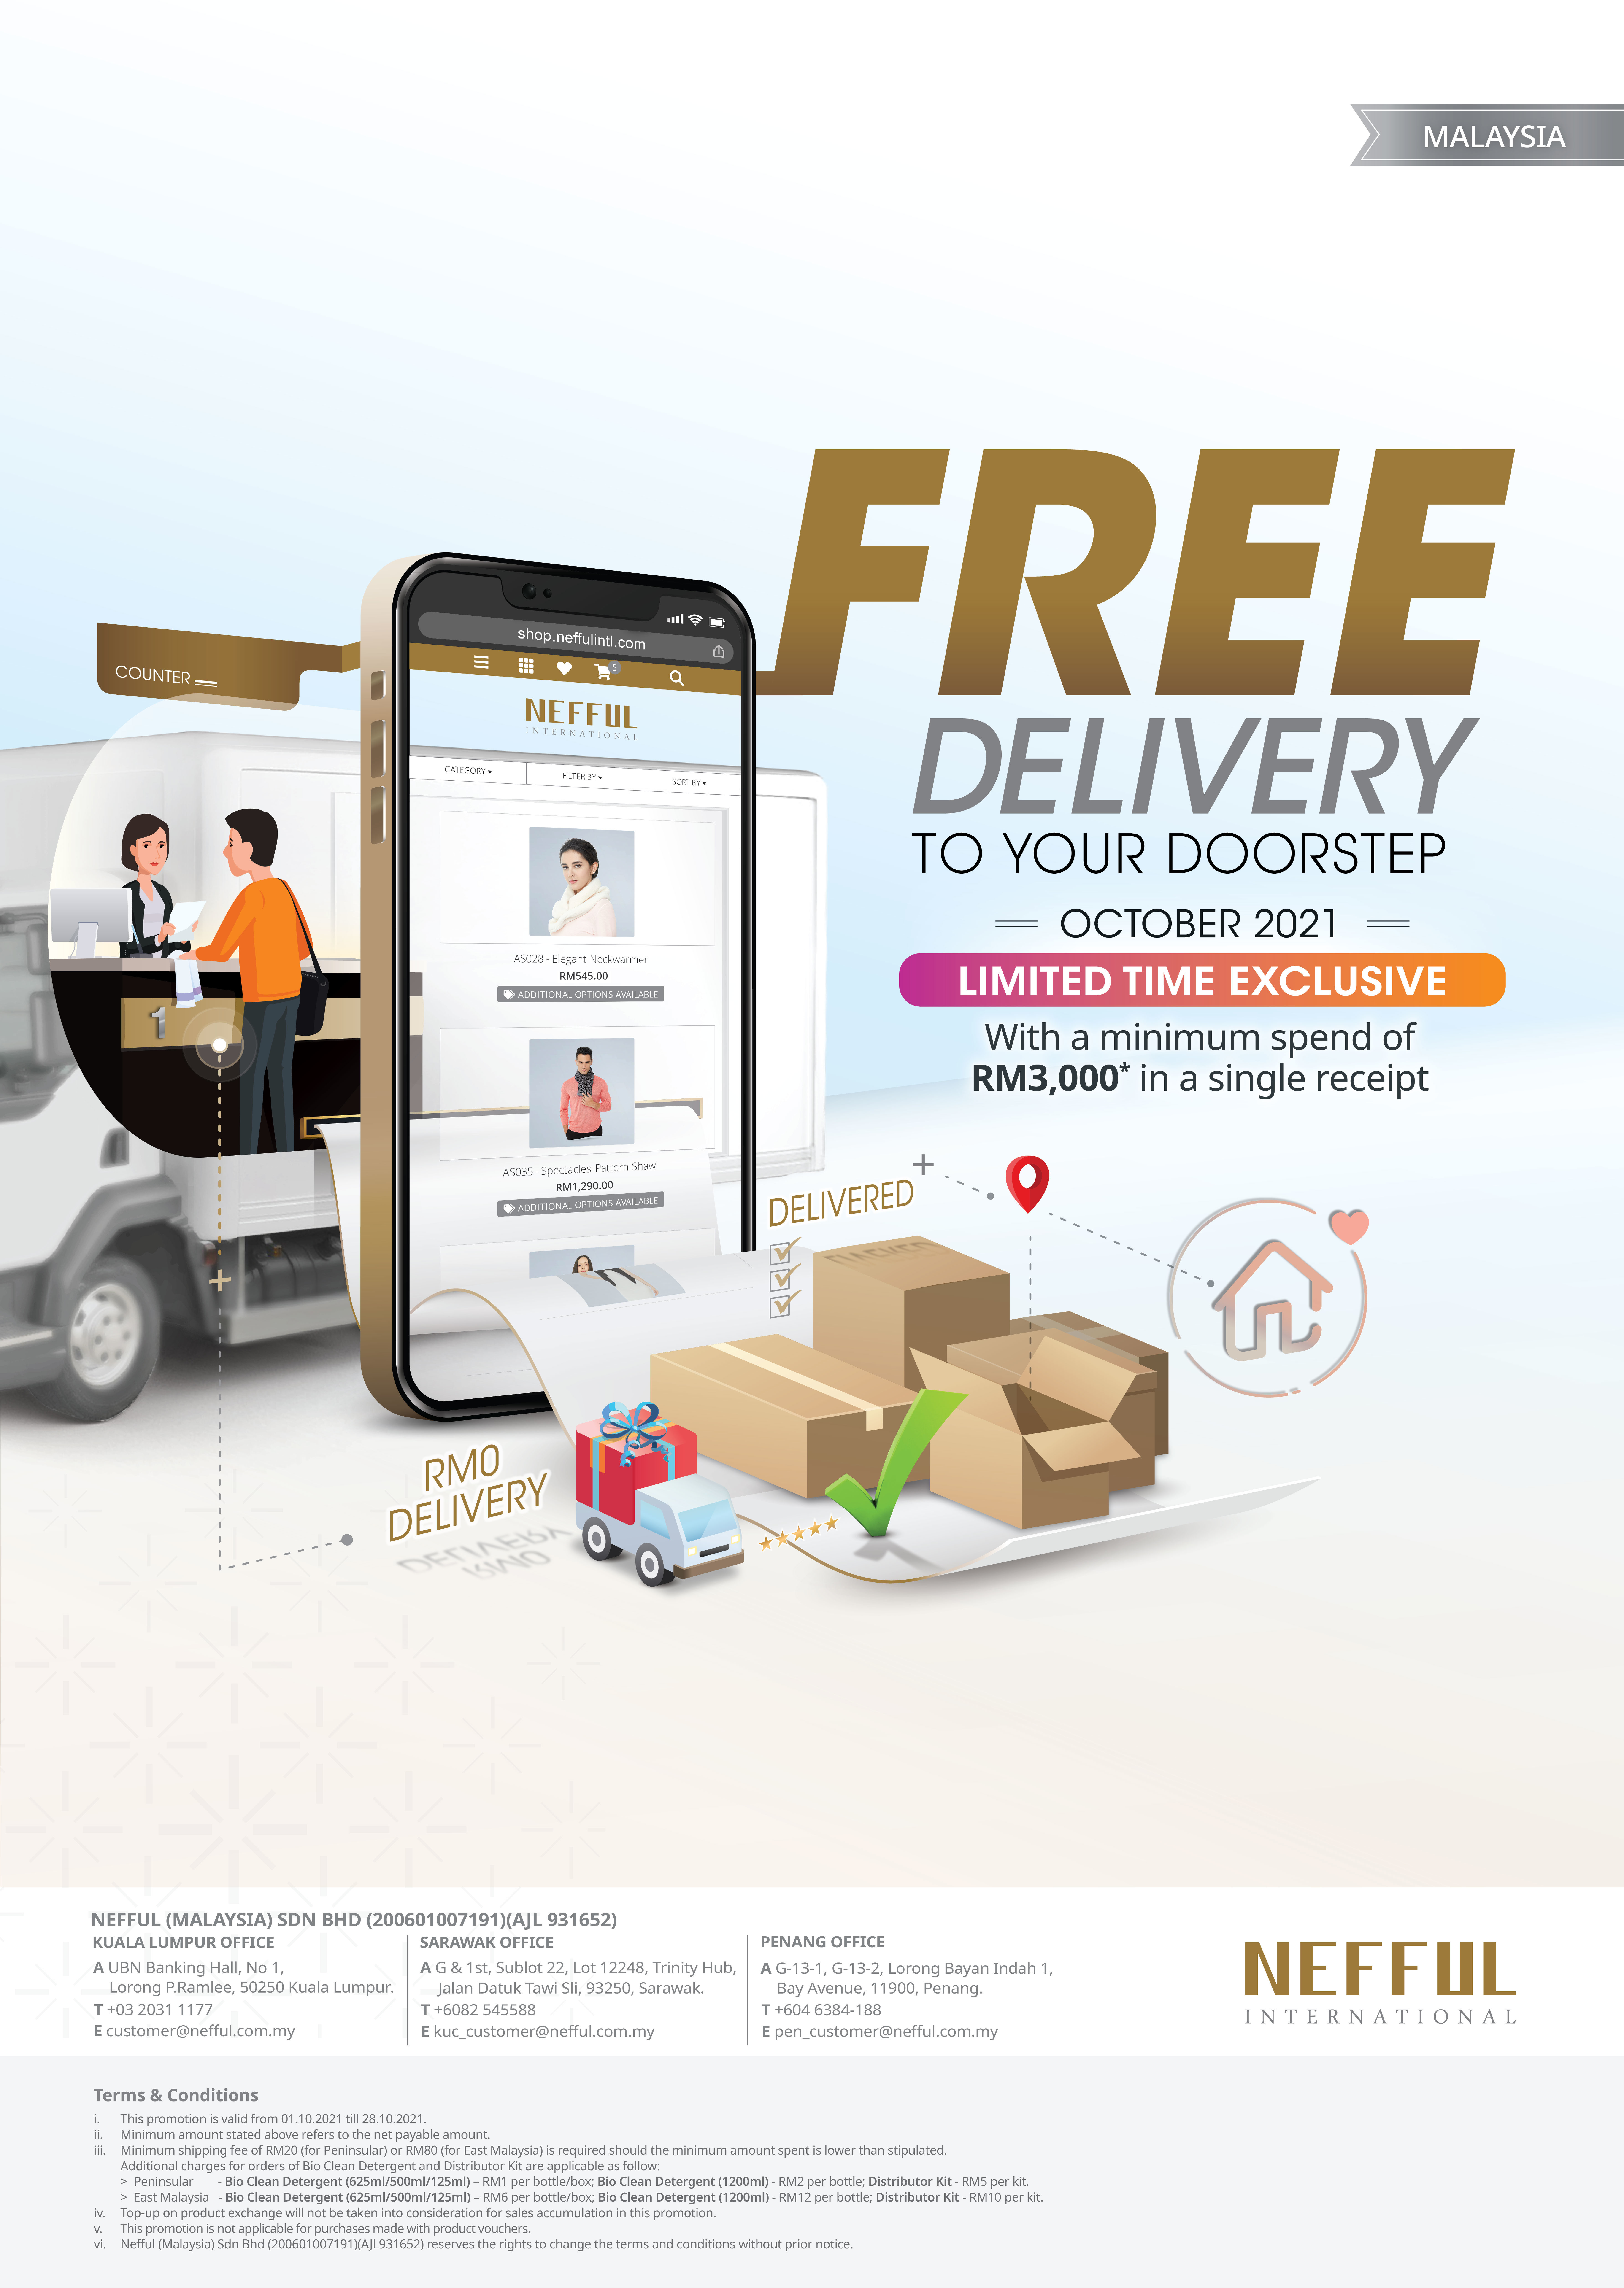 NFEN_October Free Delivery Promo FA